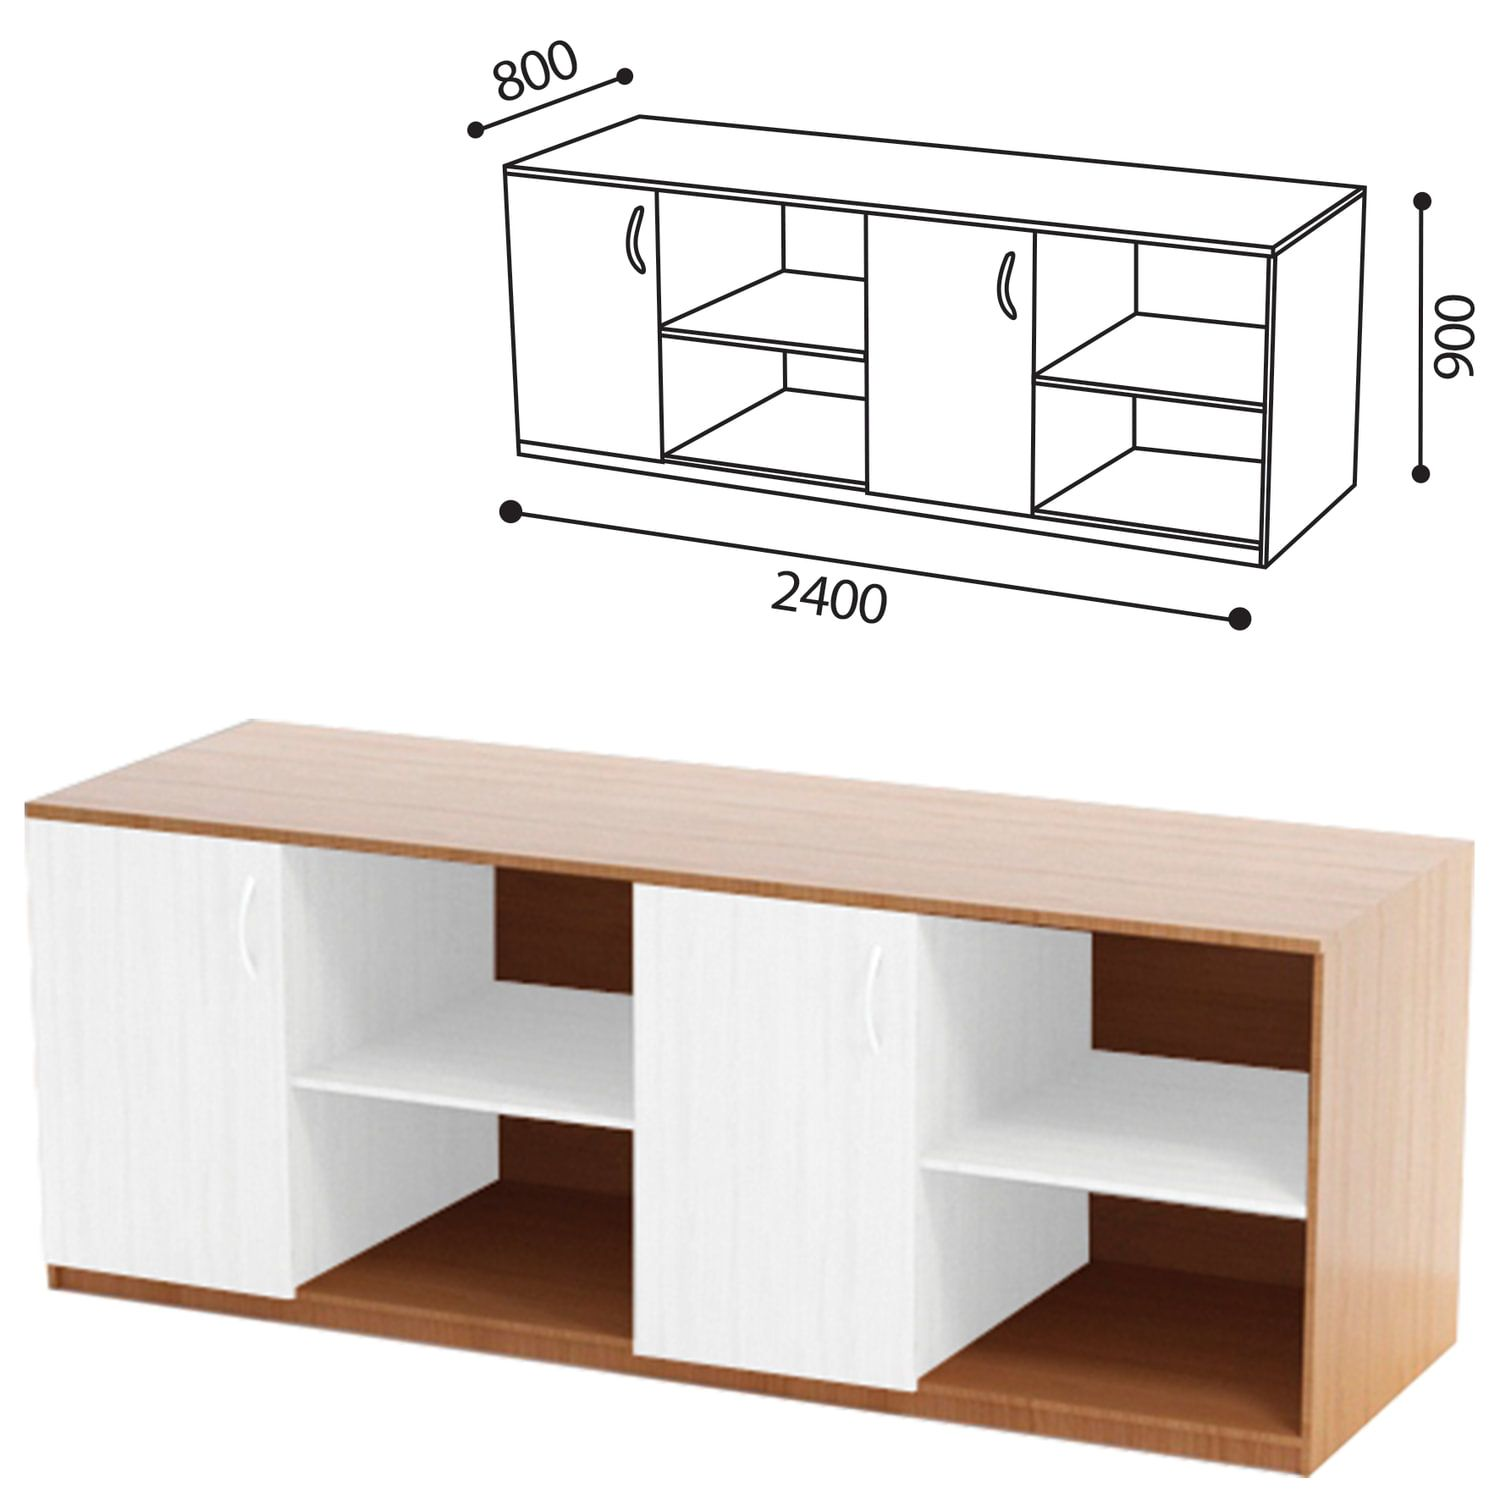 Table (PABLET 1) for the physics cabinet, 2400 x800s900mm, LDSP beech/plastic